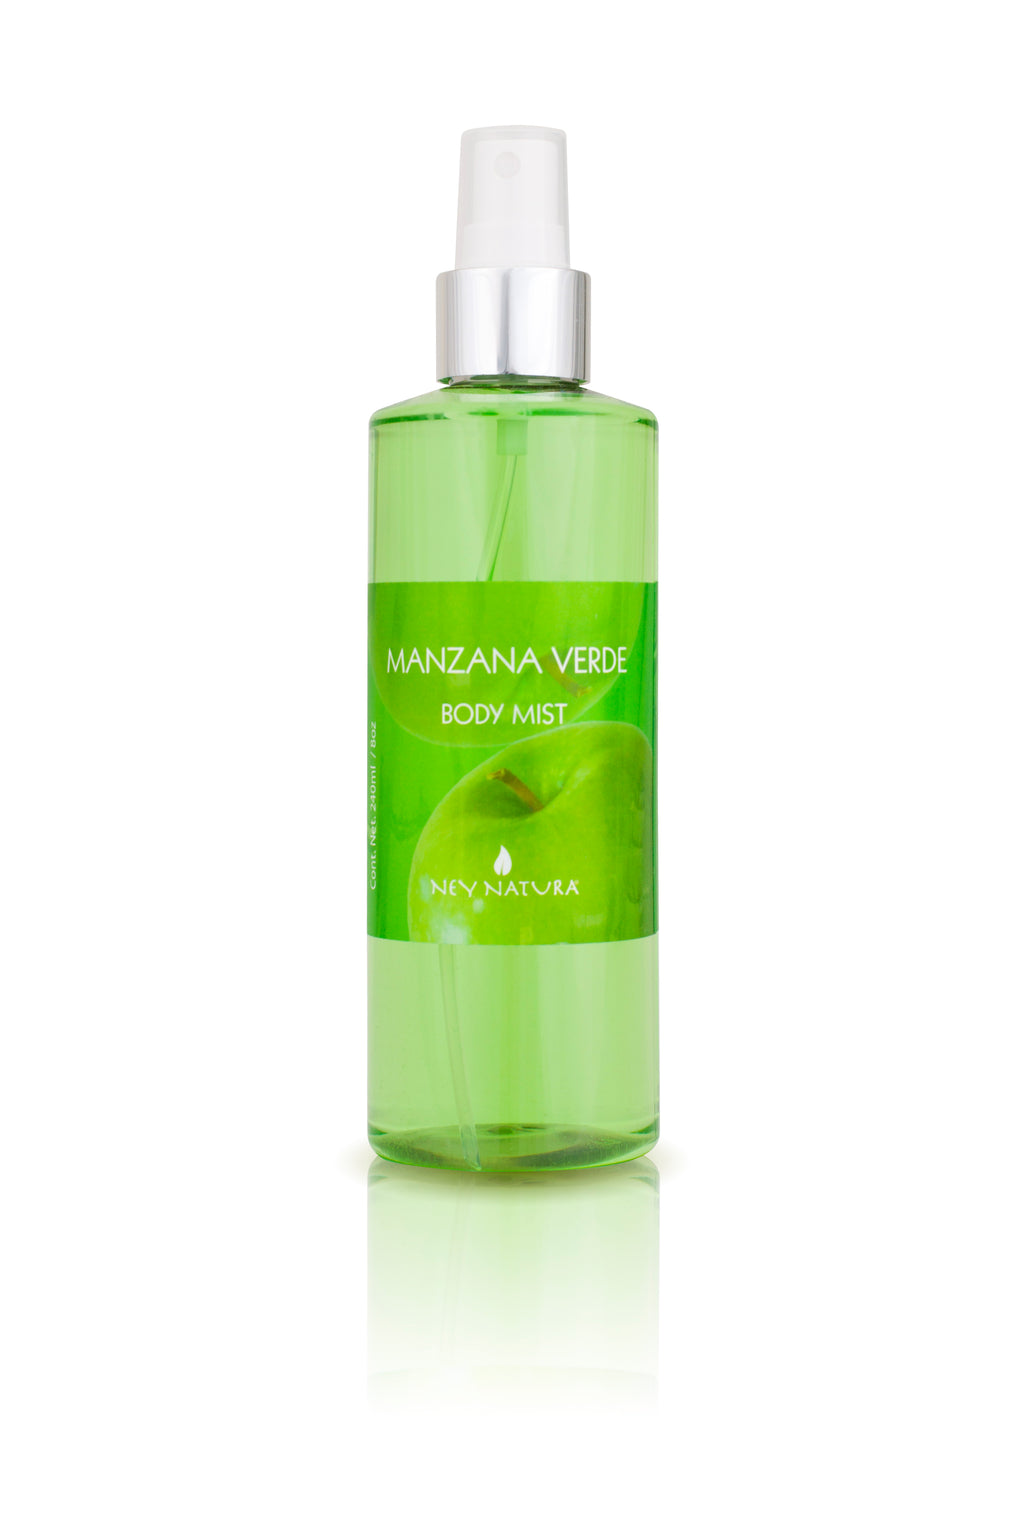 Manzana Verde Body Mist 250 ml.